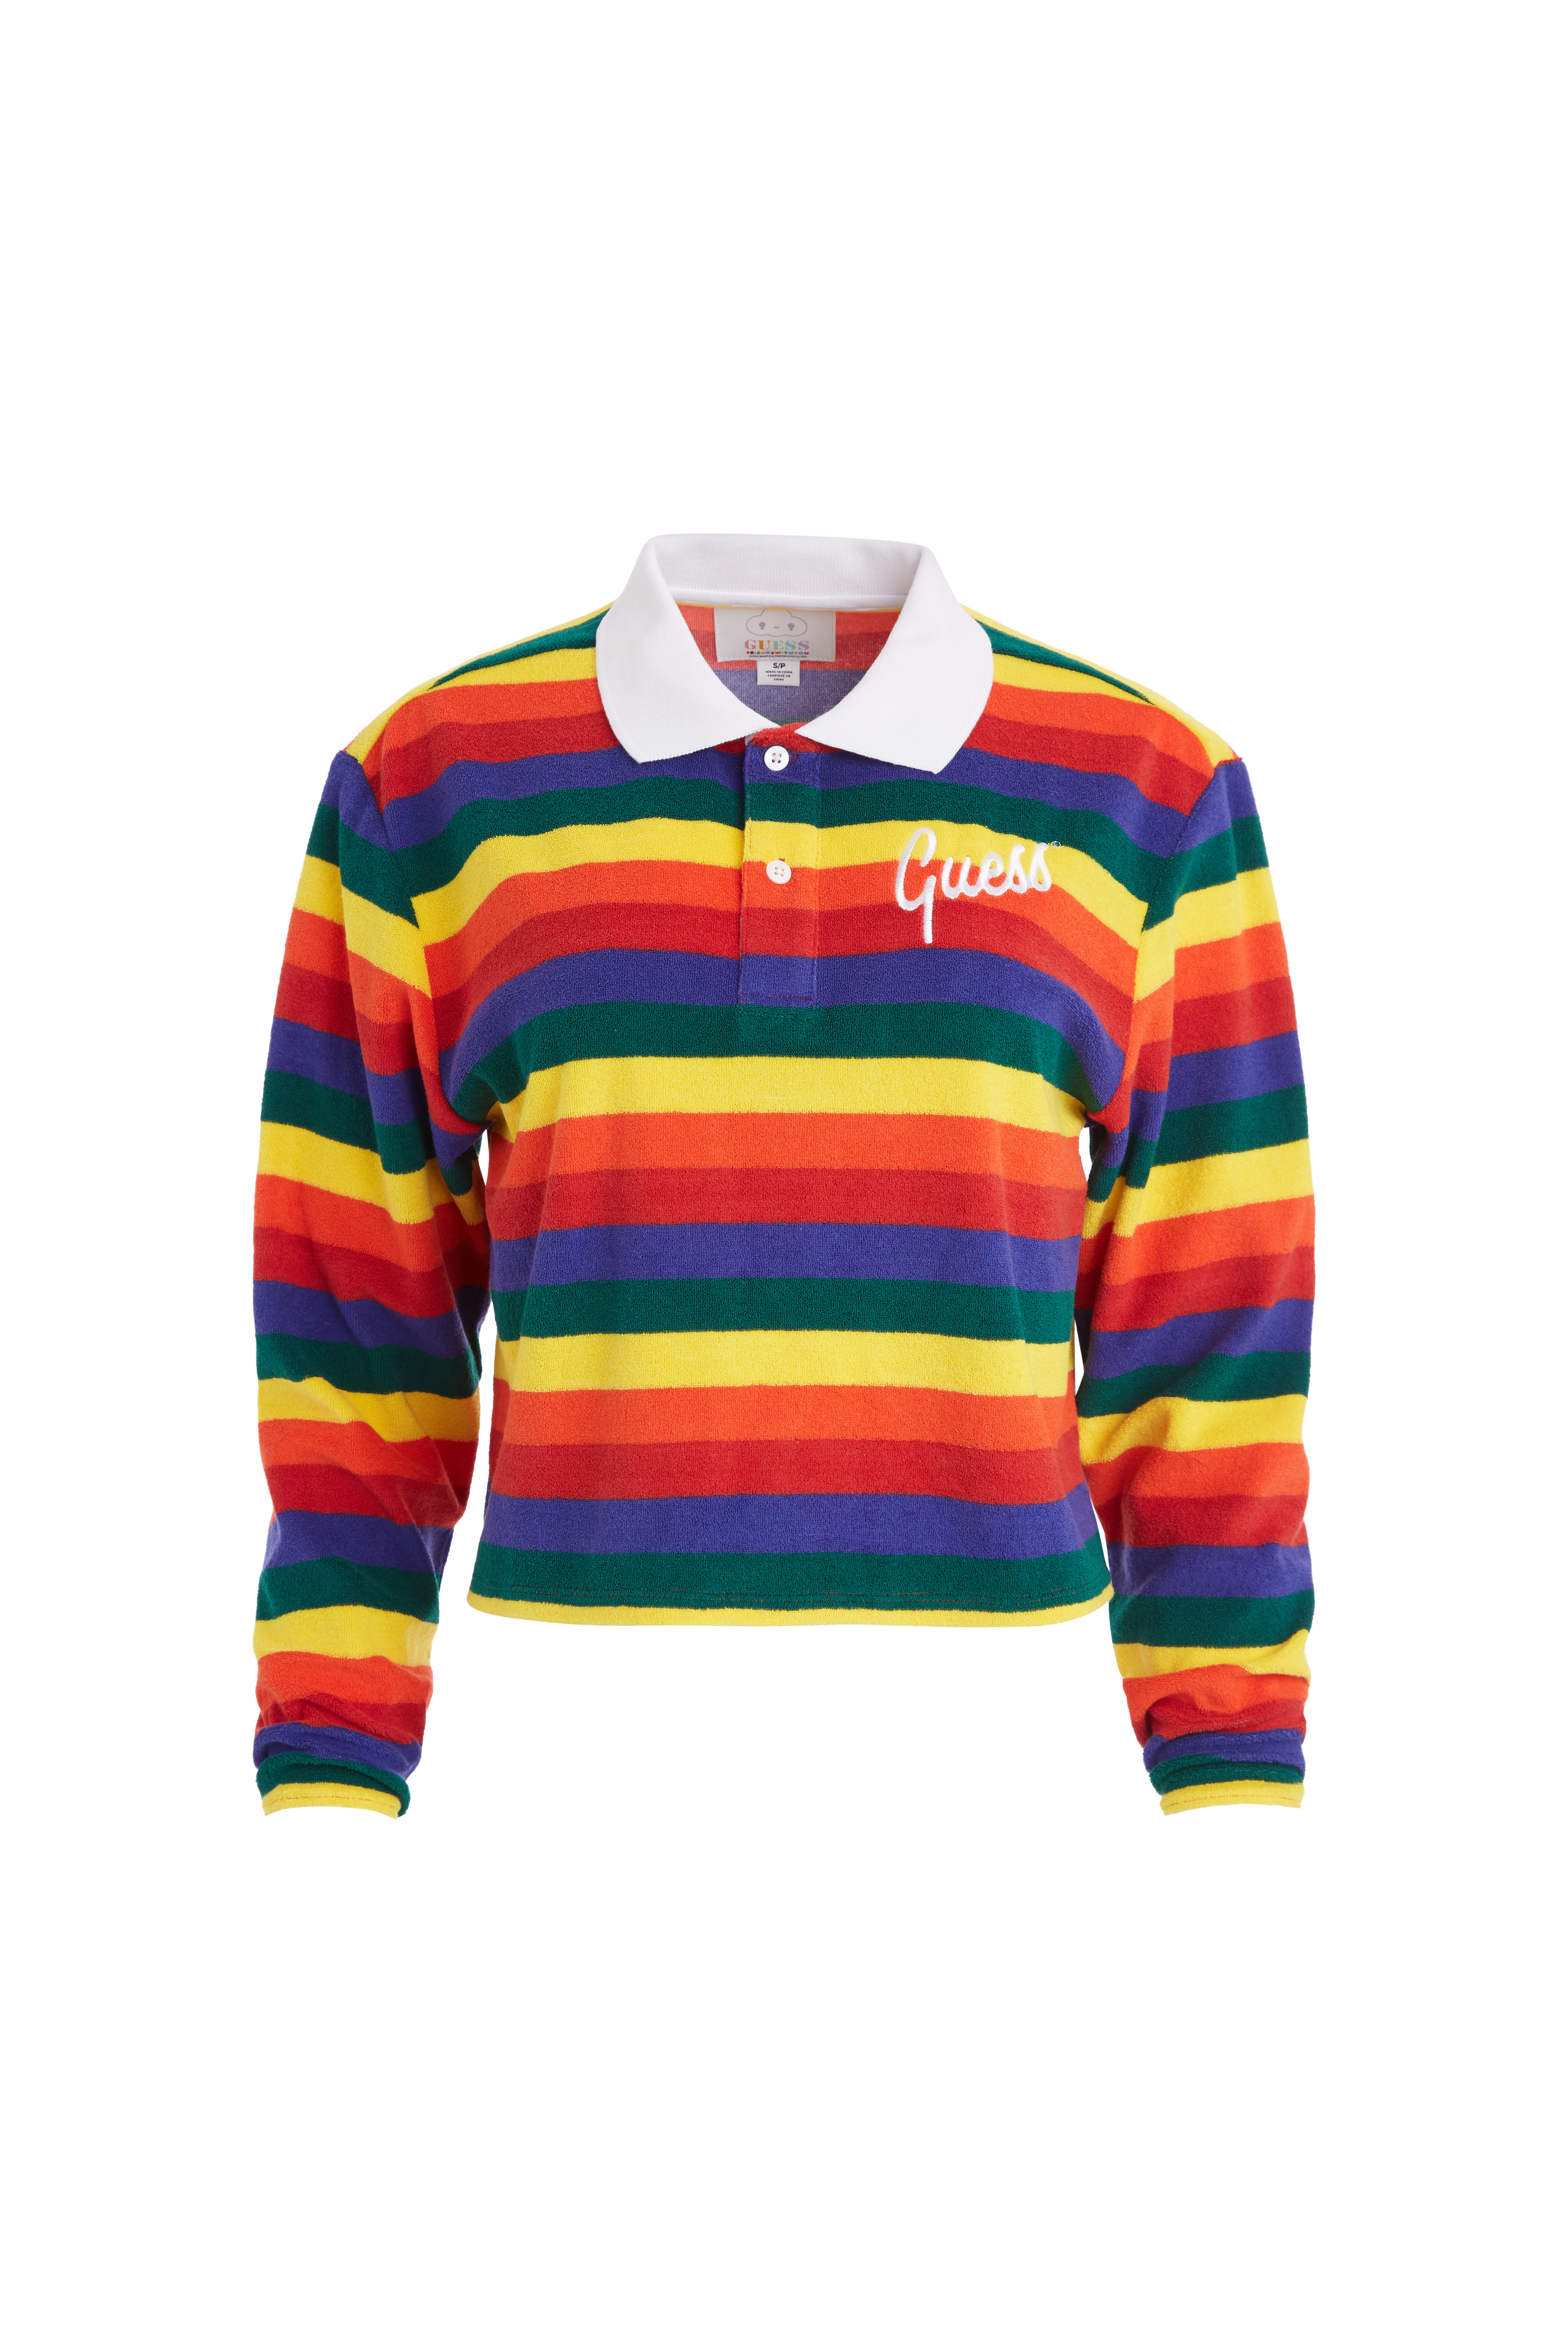 Guess x FriendsWithYou Rainbow long sleeve